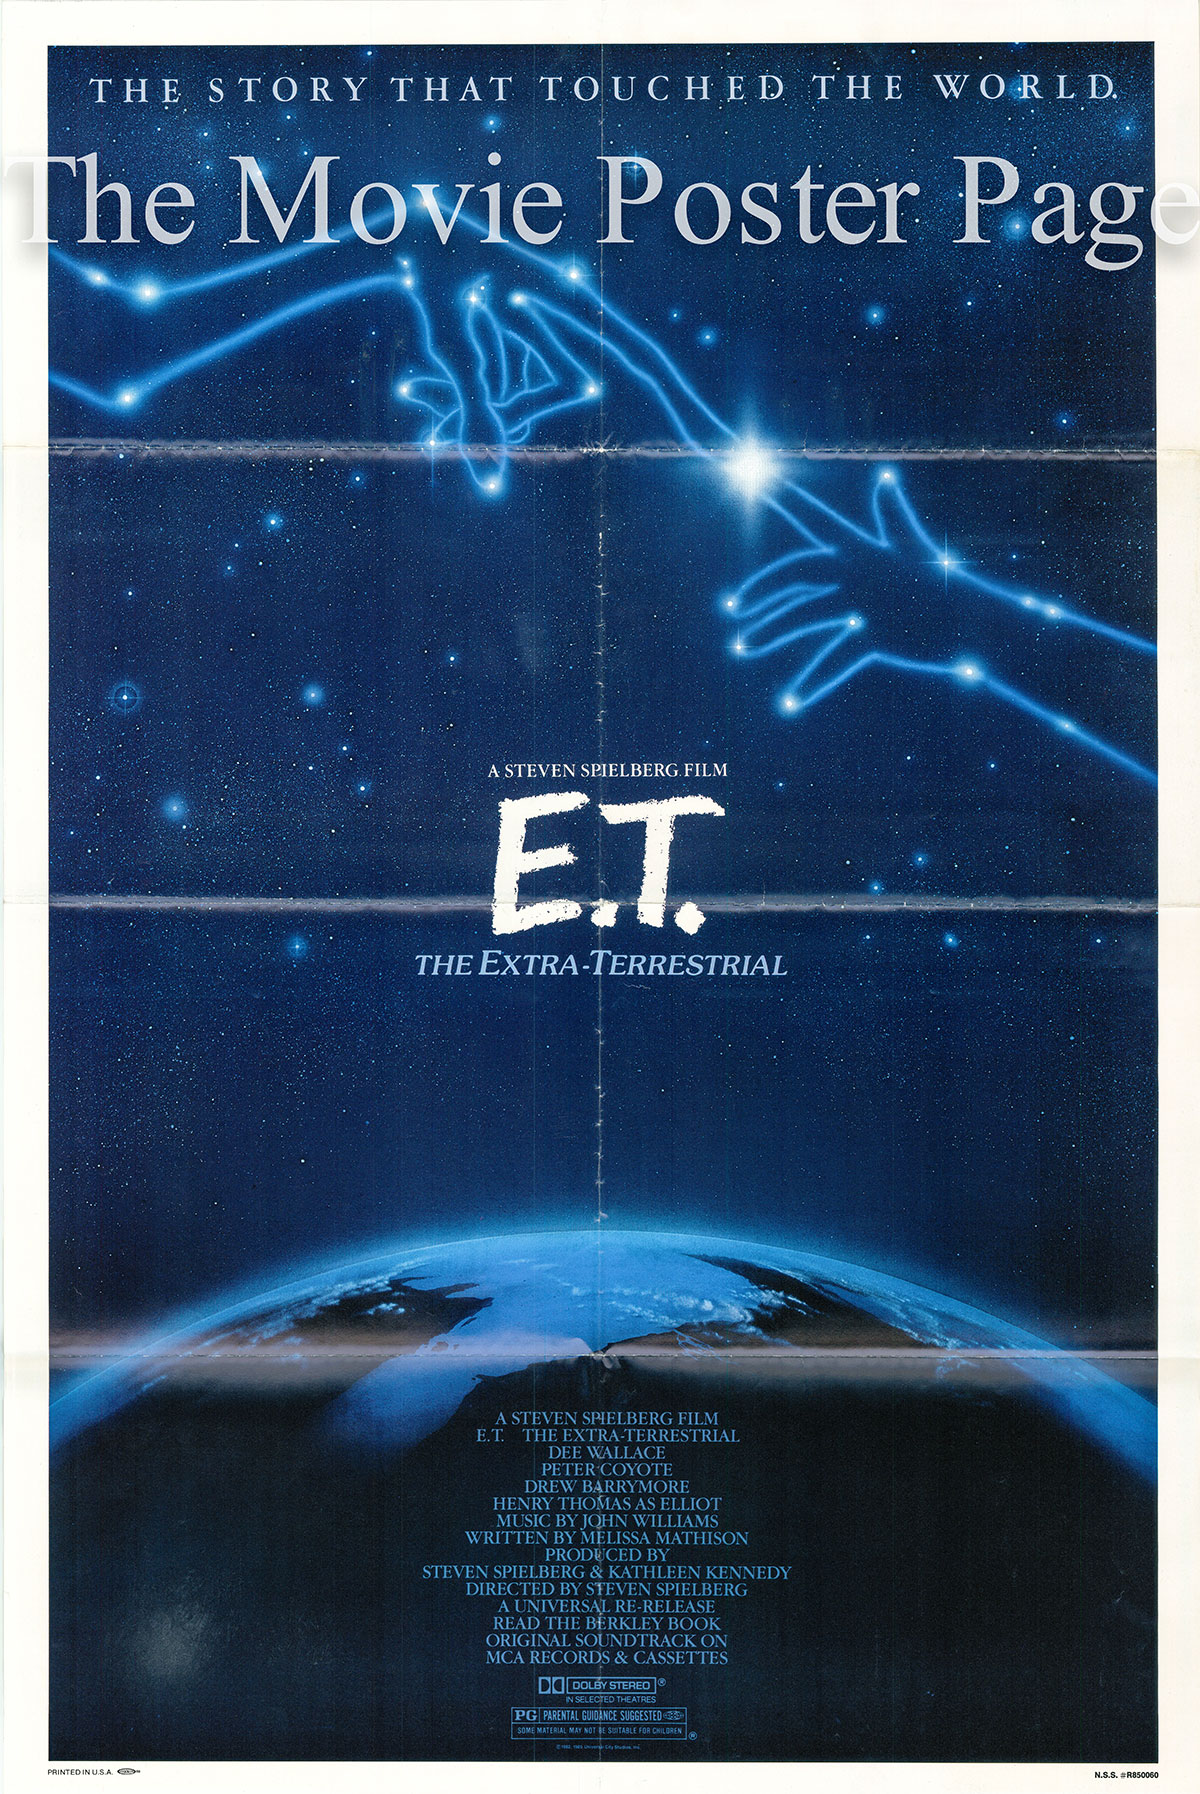 Pictured is a US one-sheet promotional poster for a 1985 rerelease of the 1982 Steven Spielberg film E.T. starring Drew Barrymore.